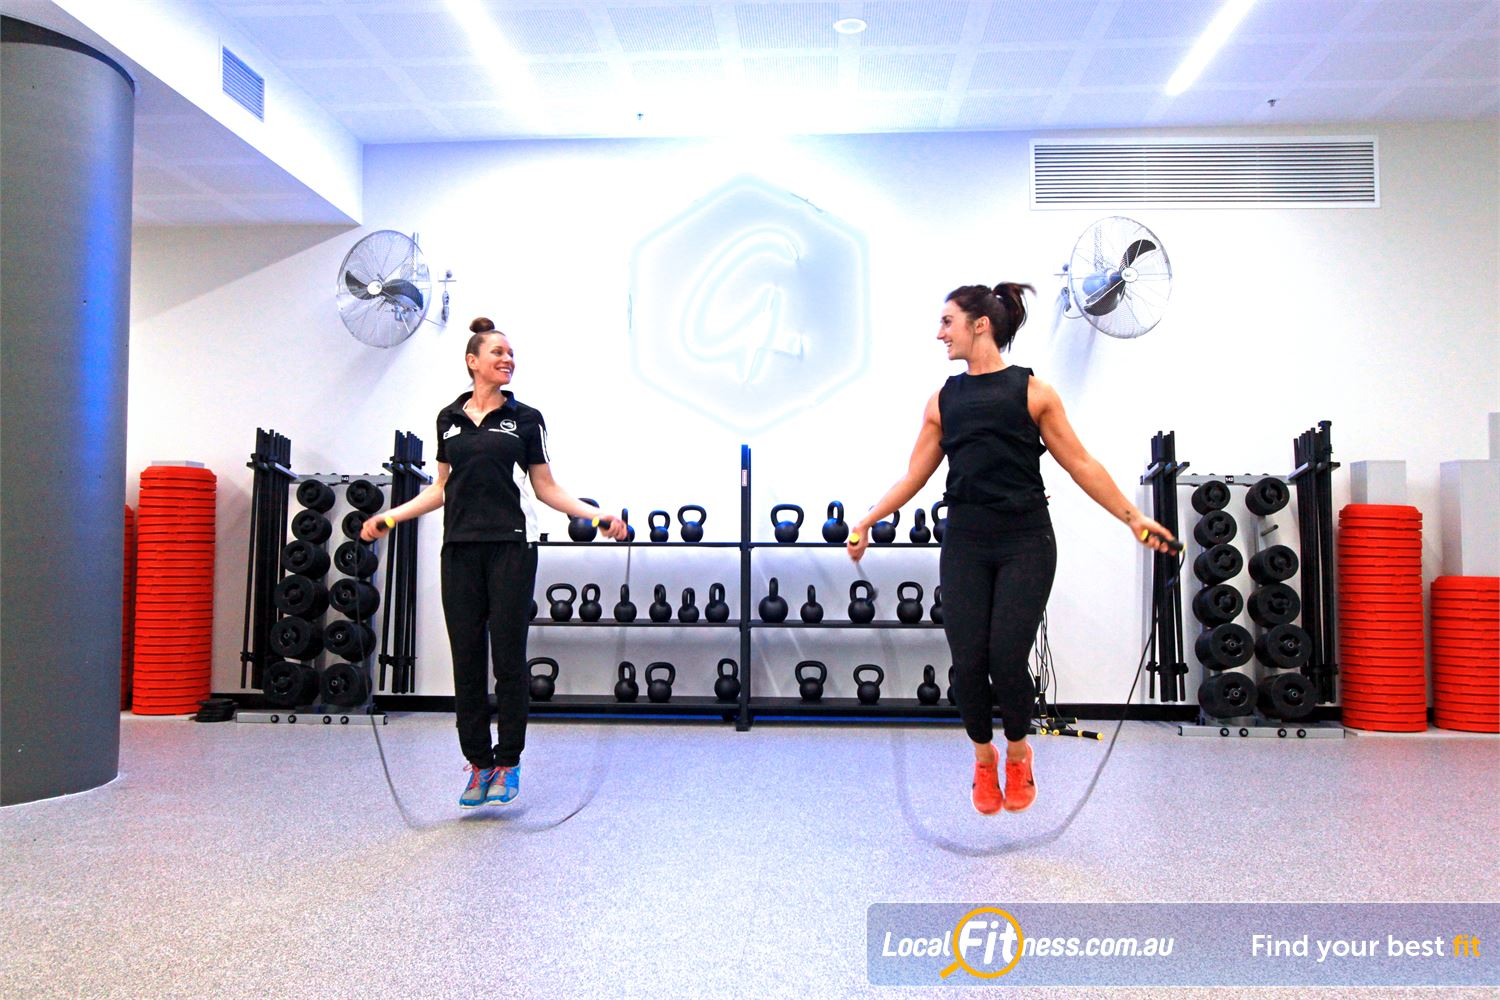 Goodlife Health Clubs Near North Melbourne Get the motivation to achieve your goals.